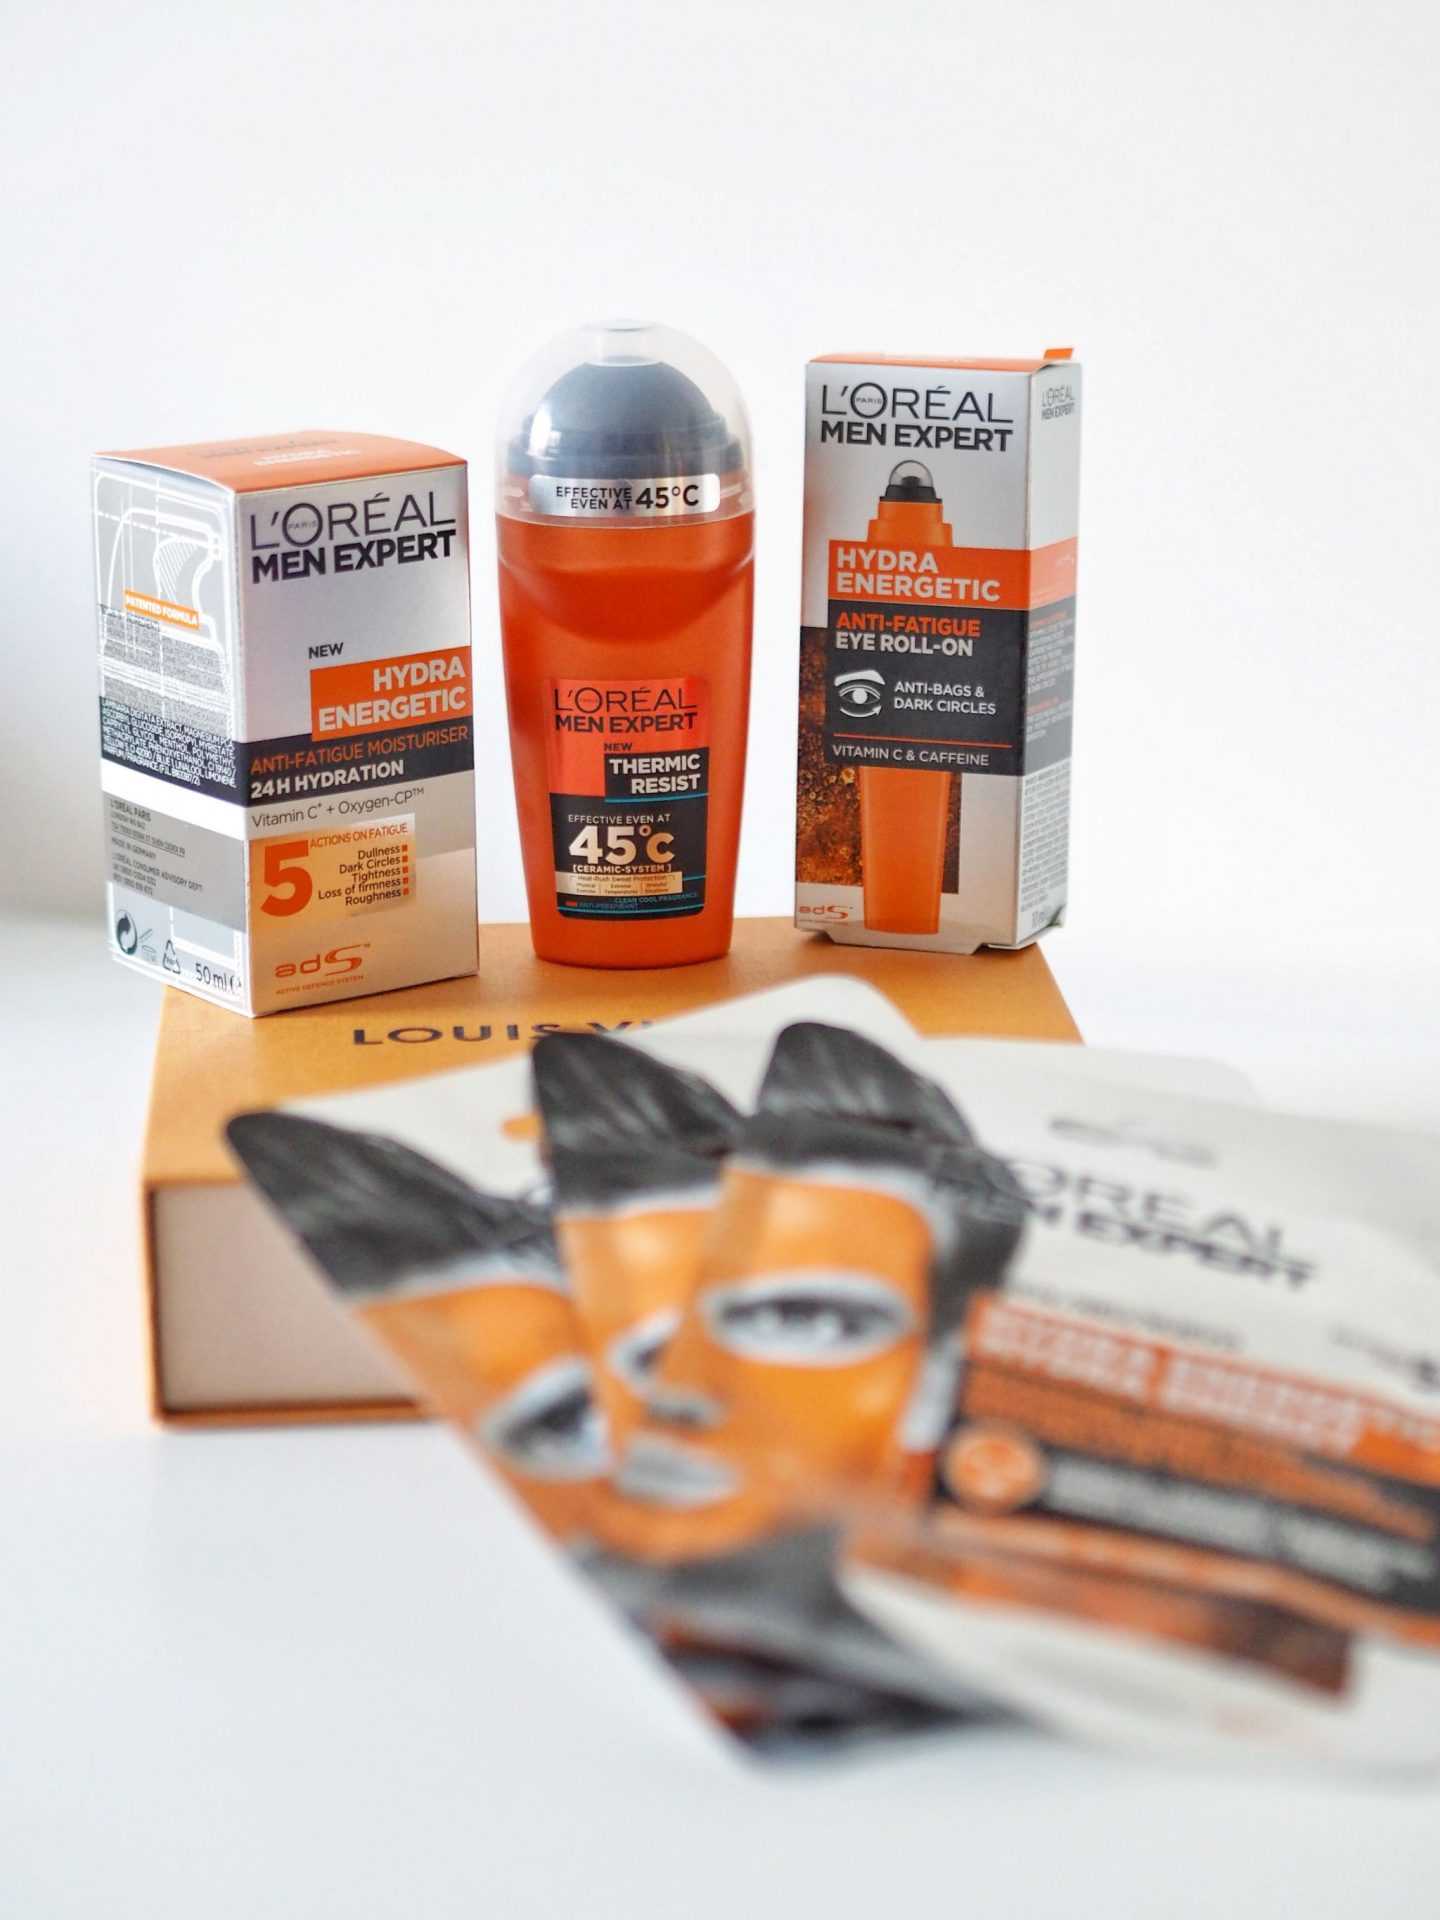 L'Oreal Men Expert Skincare for Fathers Day